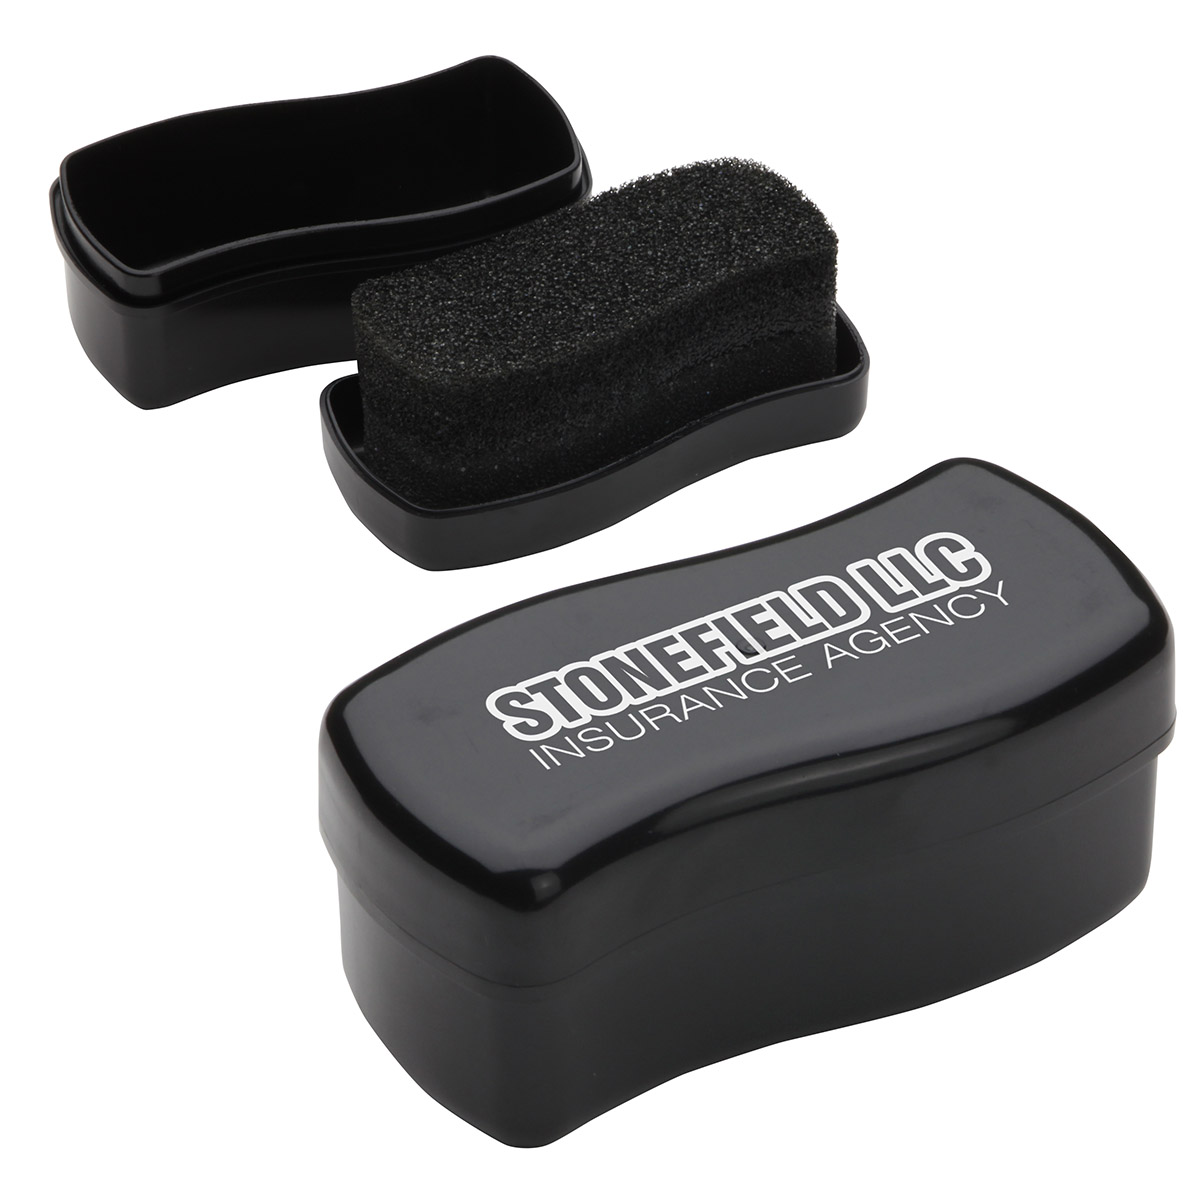 Touch-Up Shoe Shine Black Polish, WPC-TB12, 1 Colour Imprint